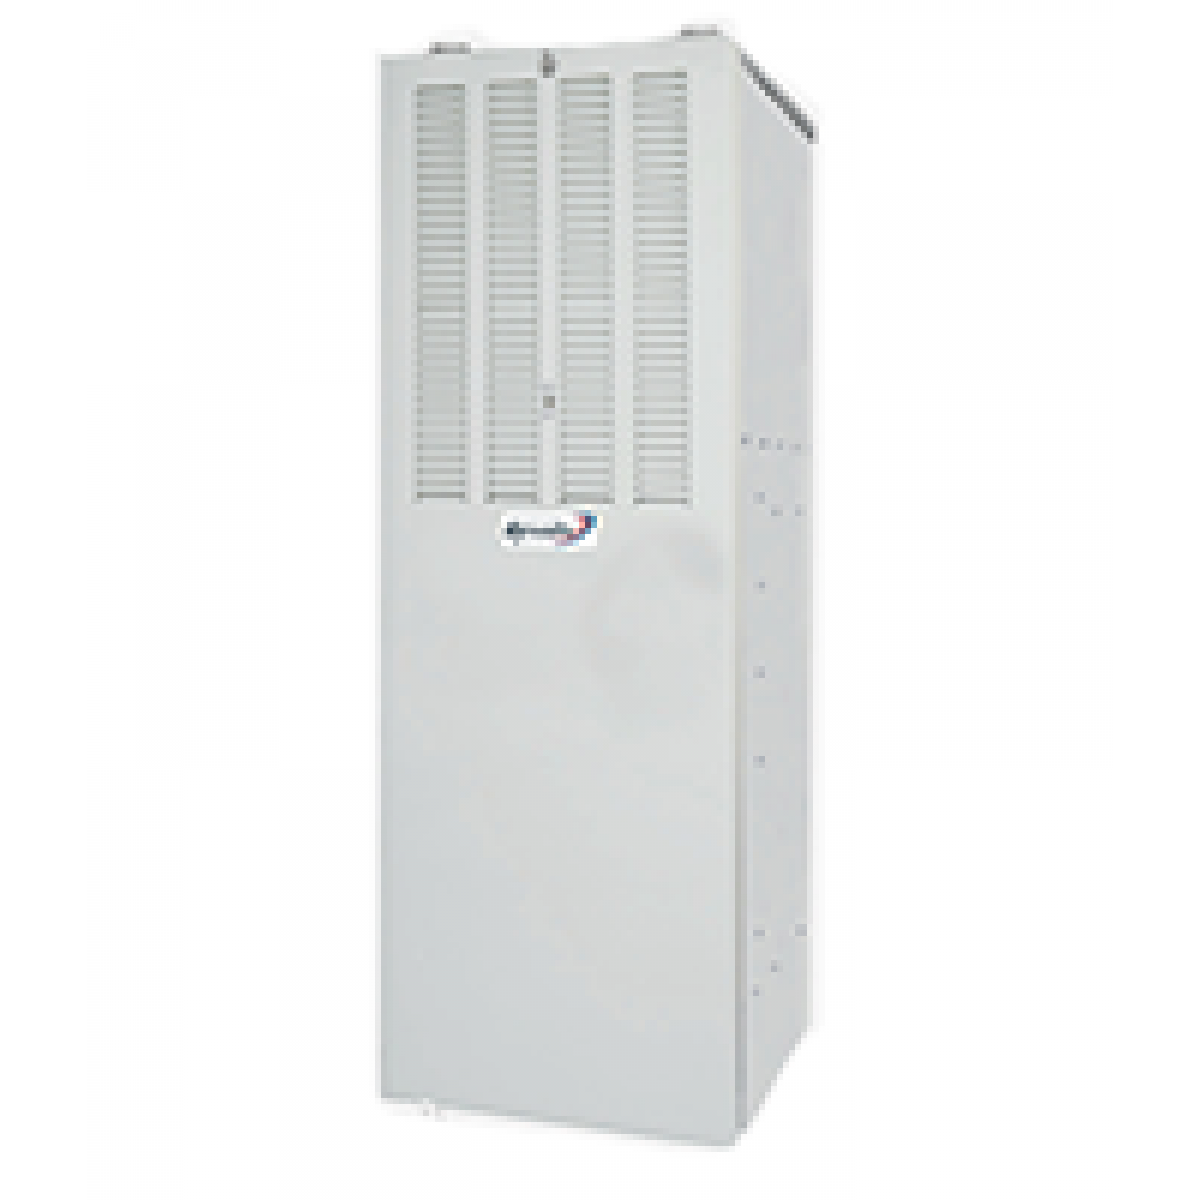 Coil Boiler Prices ~ Revolv k btu gas furnace for maunfactured home